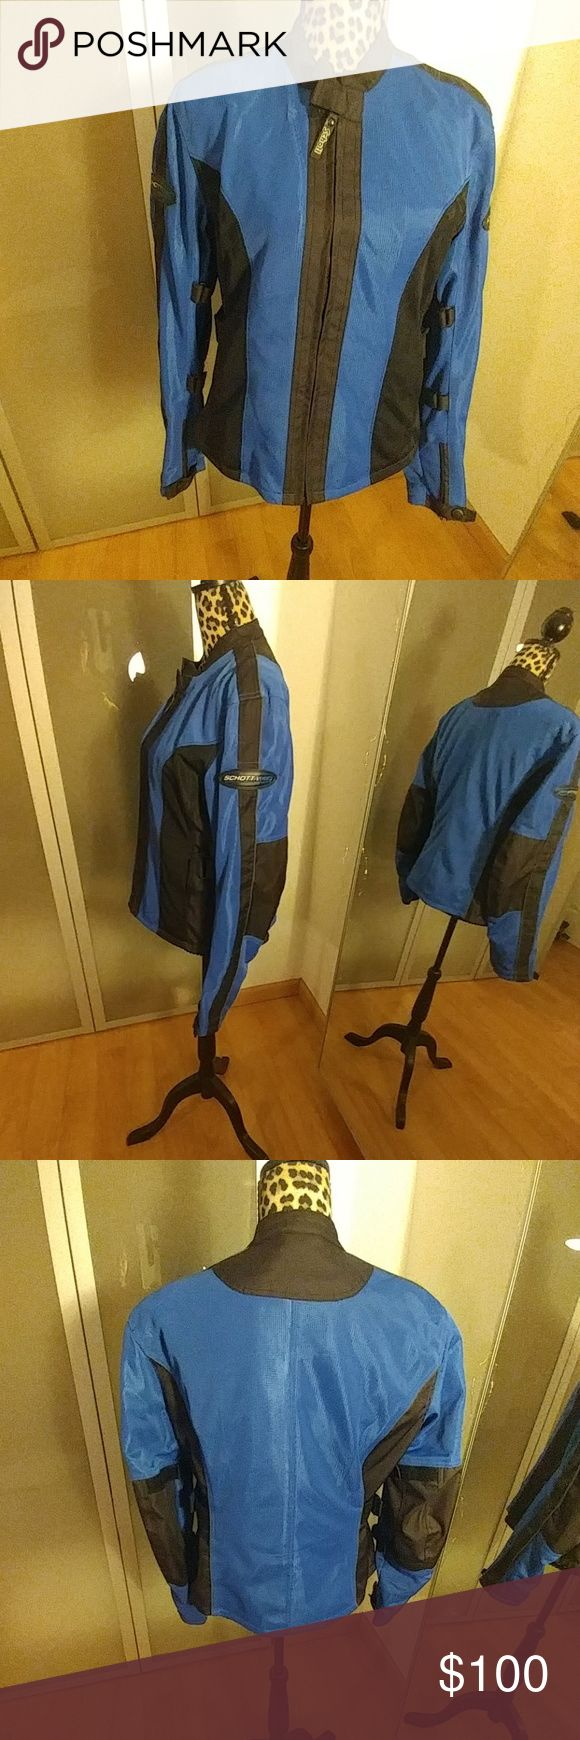 Black and royal blue jacket Are utility jacket use for skiing.. has pockets on the inside and outside and velcro under the arm and on the side to adjust.. in good condition I pointed out a little defect on top.. Schott NYC Jackets & Coats Utility Jackets